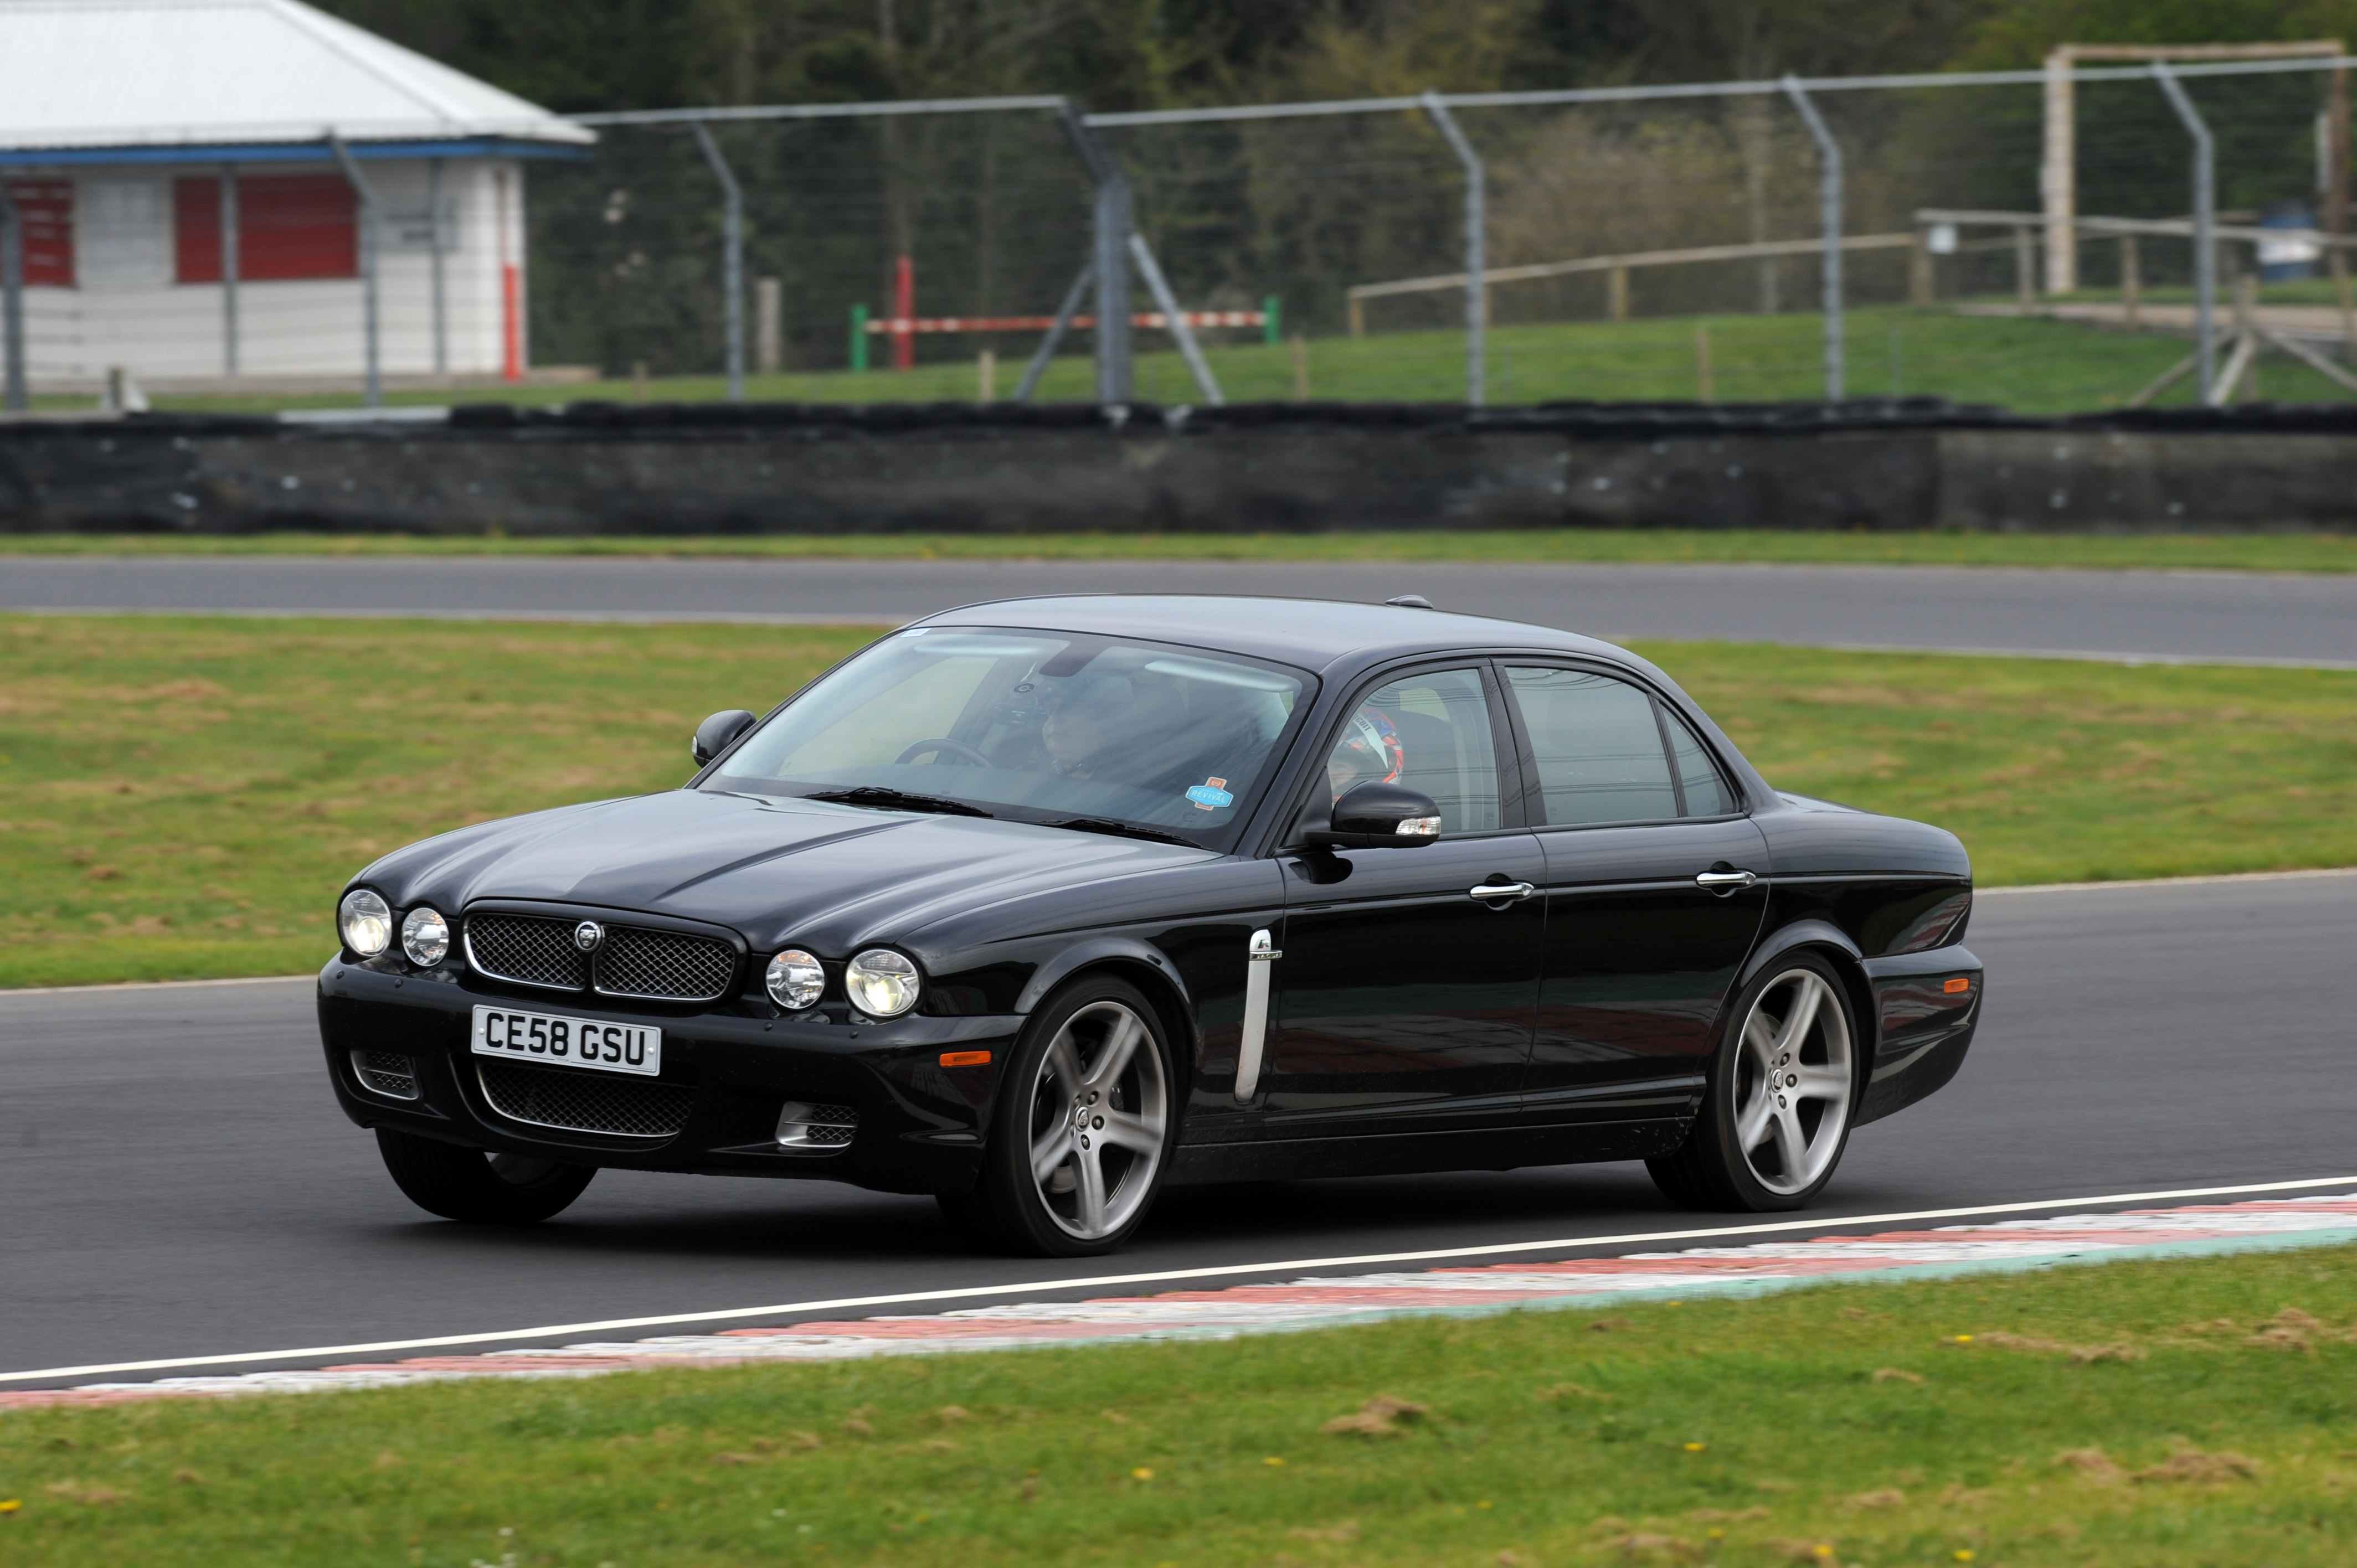 Rob Jenner and Letitia Mace at Castle Combe Race Circuit